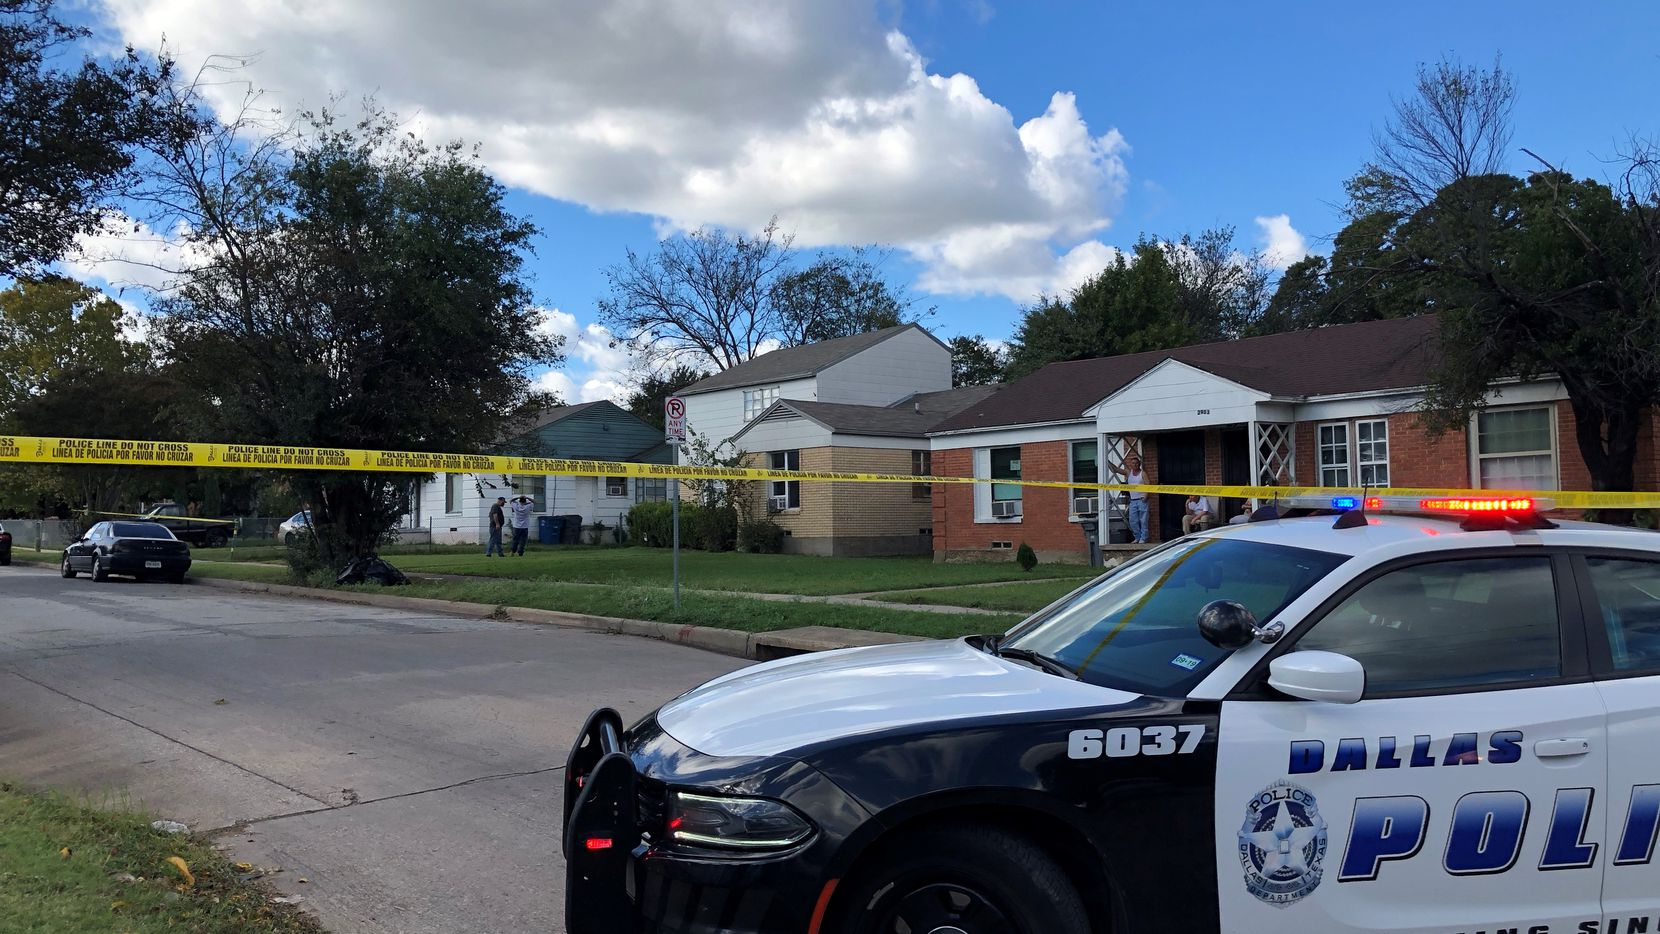 A man was killed Thursday afternoon in Oak Cliff, police said.